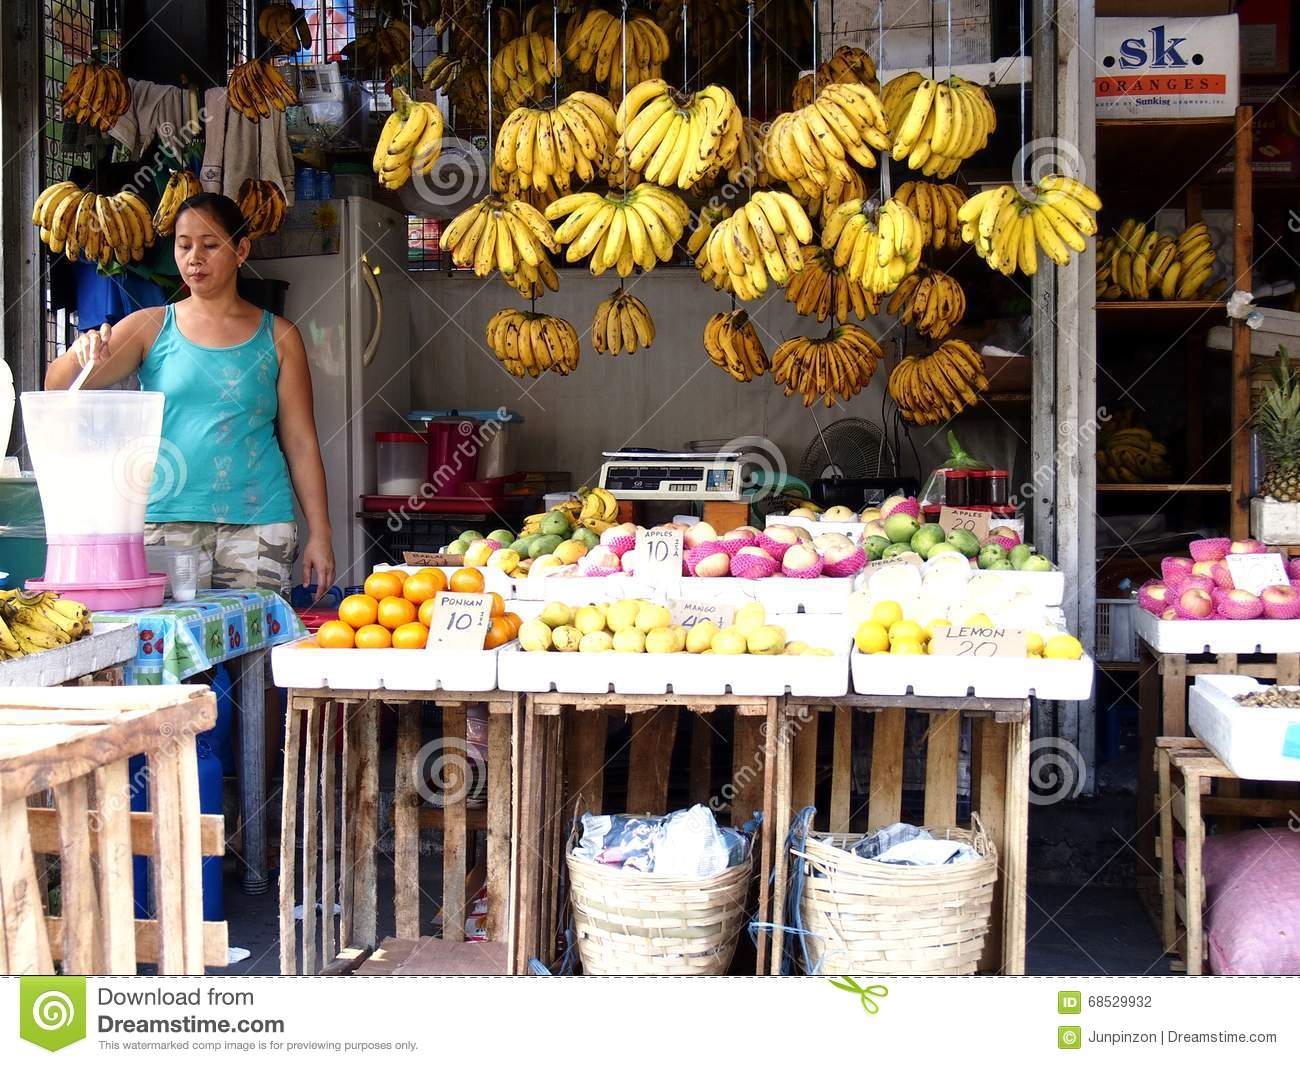 A vendor prepares fruit juice in her fruit stand in a market in Cainta, Philippines